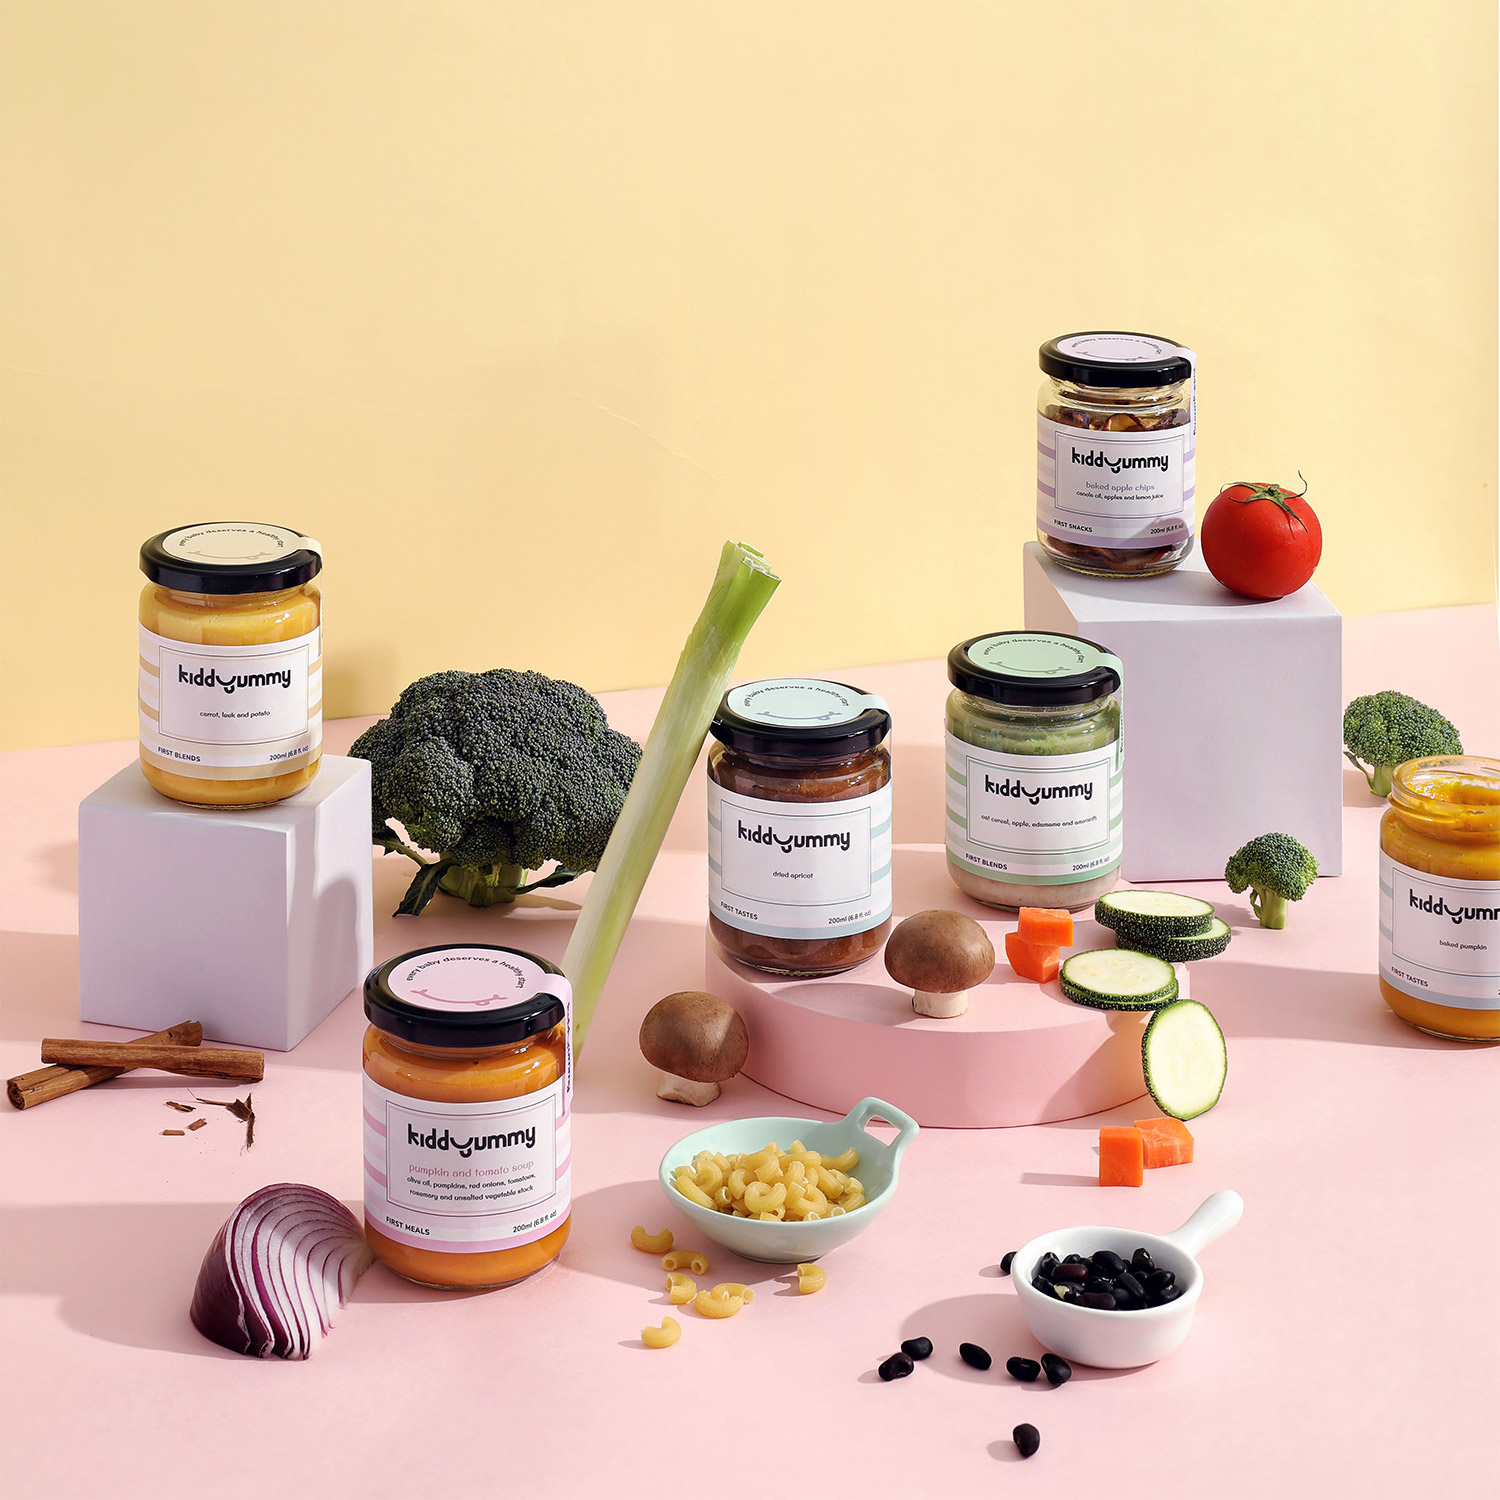 Kiddyummy jars with beans and vegetable